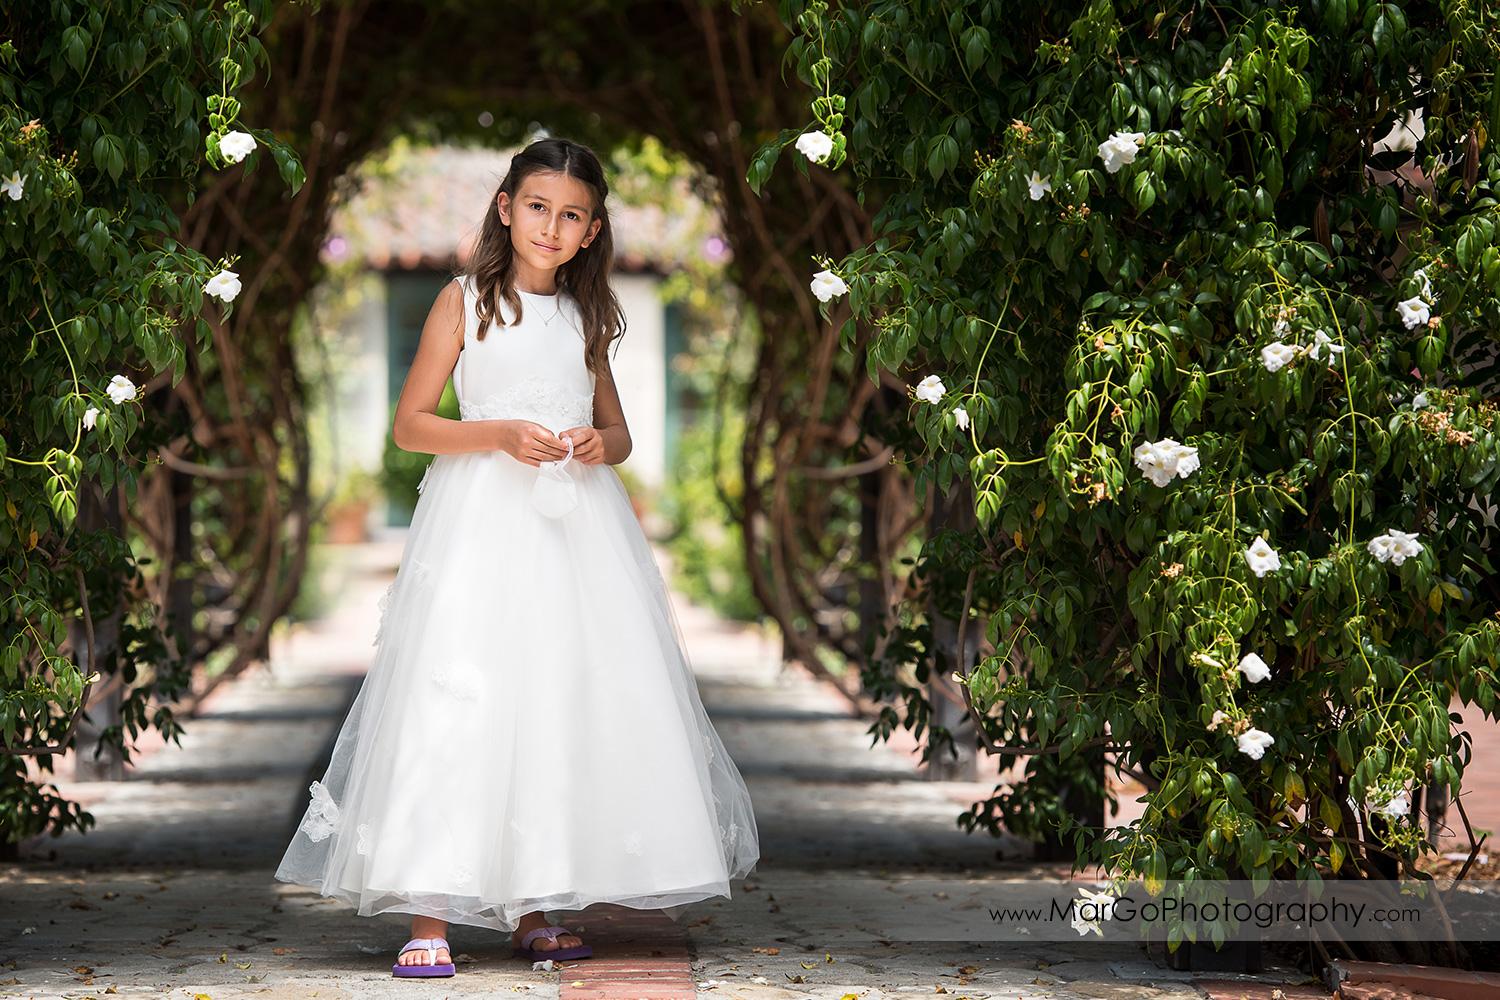 full body portrait of first communion girl in white dress standing under green arch with white flowers at Cafe Wisteria in Menlo Park